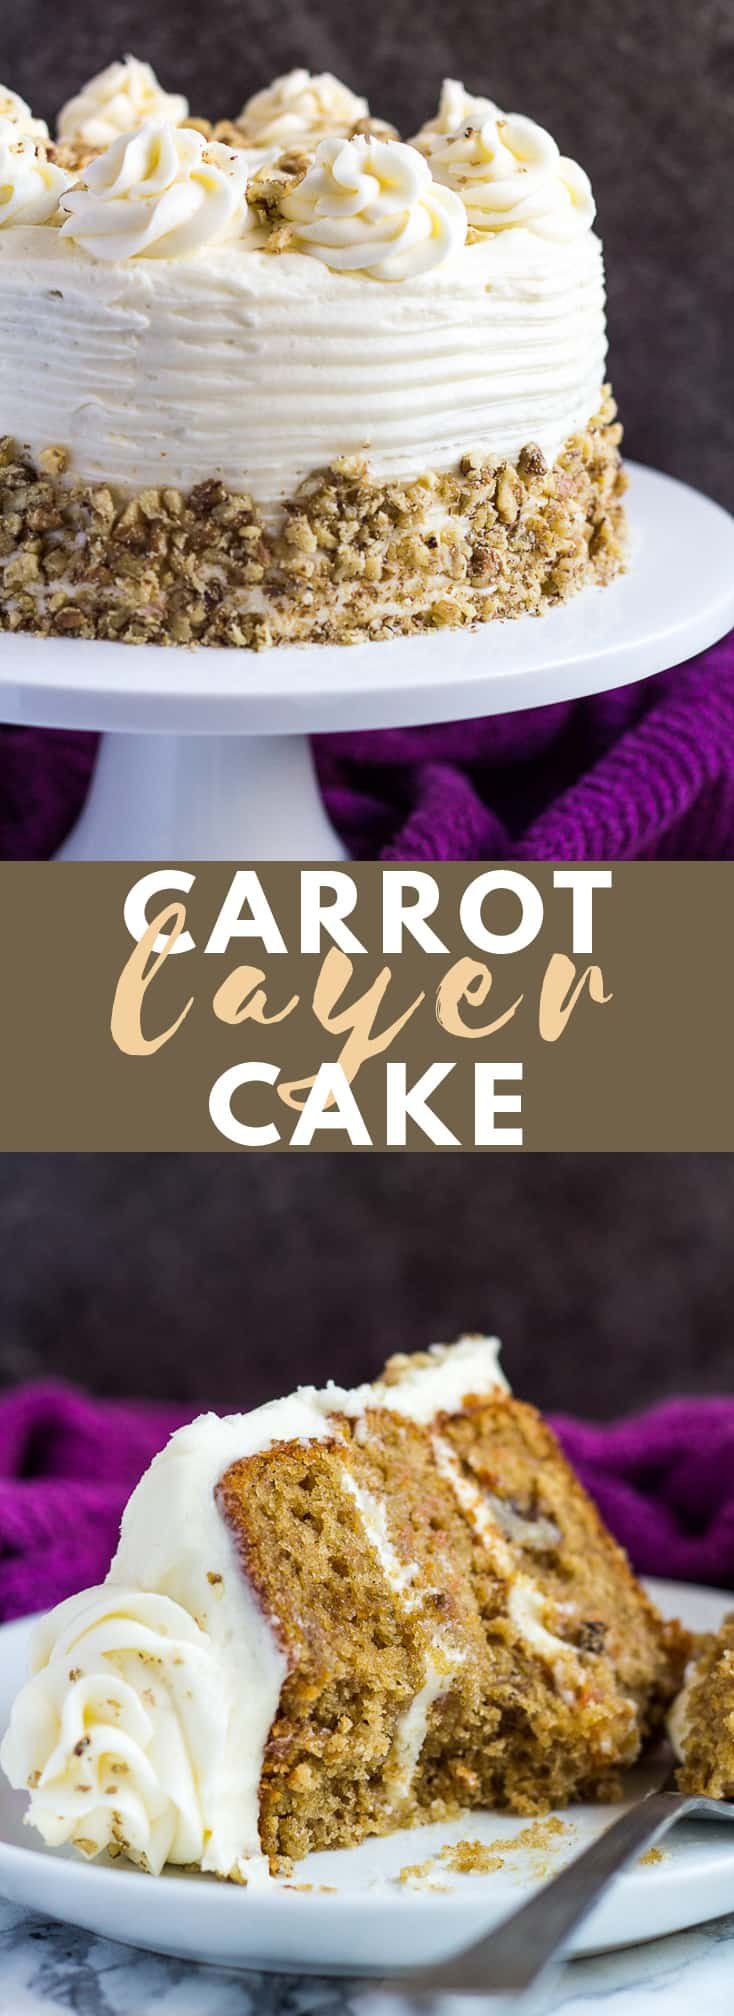 Carrot Layer Cake – Incredibly moist and fluffy carrot cake that is infused with spices, loaded with carrots and nuts, and frosted with a cream cheese buttercream!